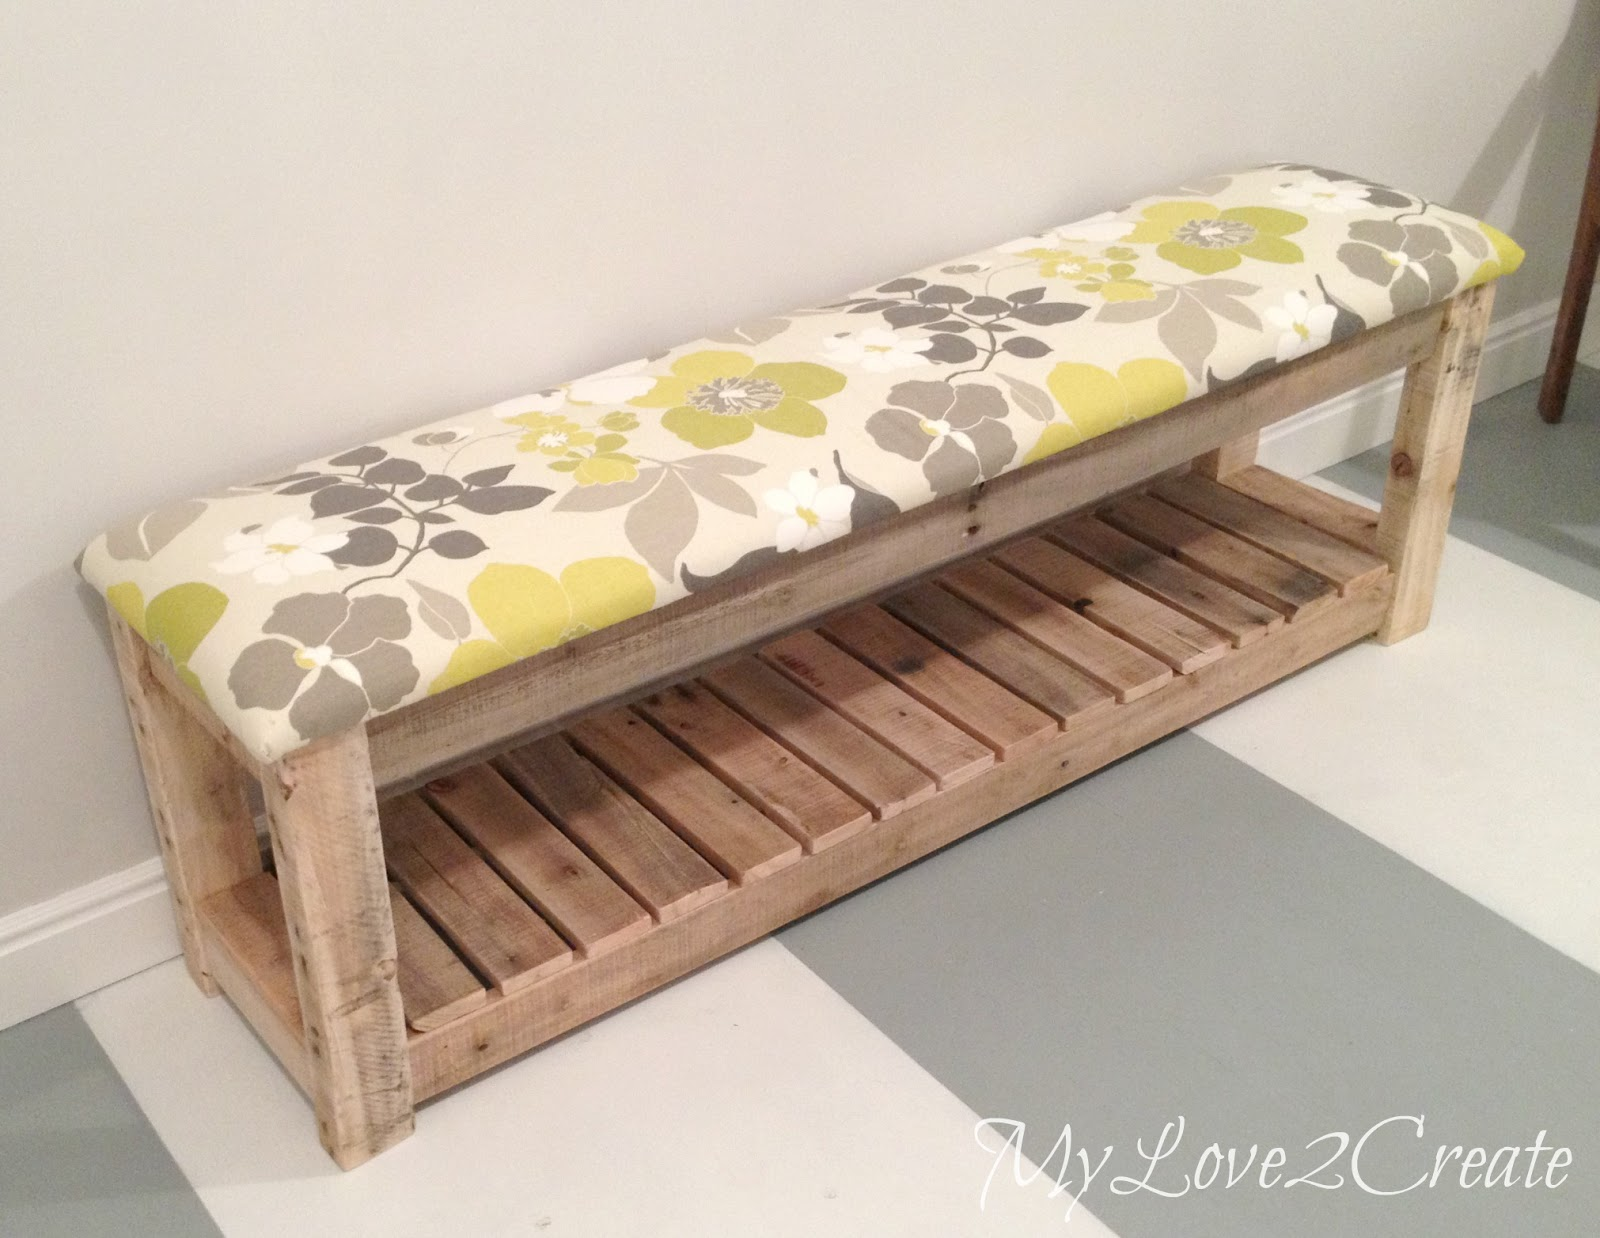 How To Build An Upholstered Bench For Indoor Or Outdoor Use